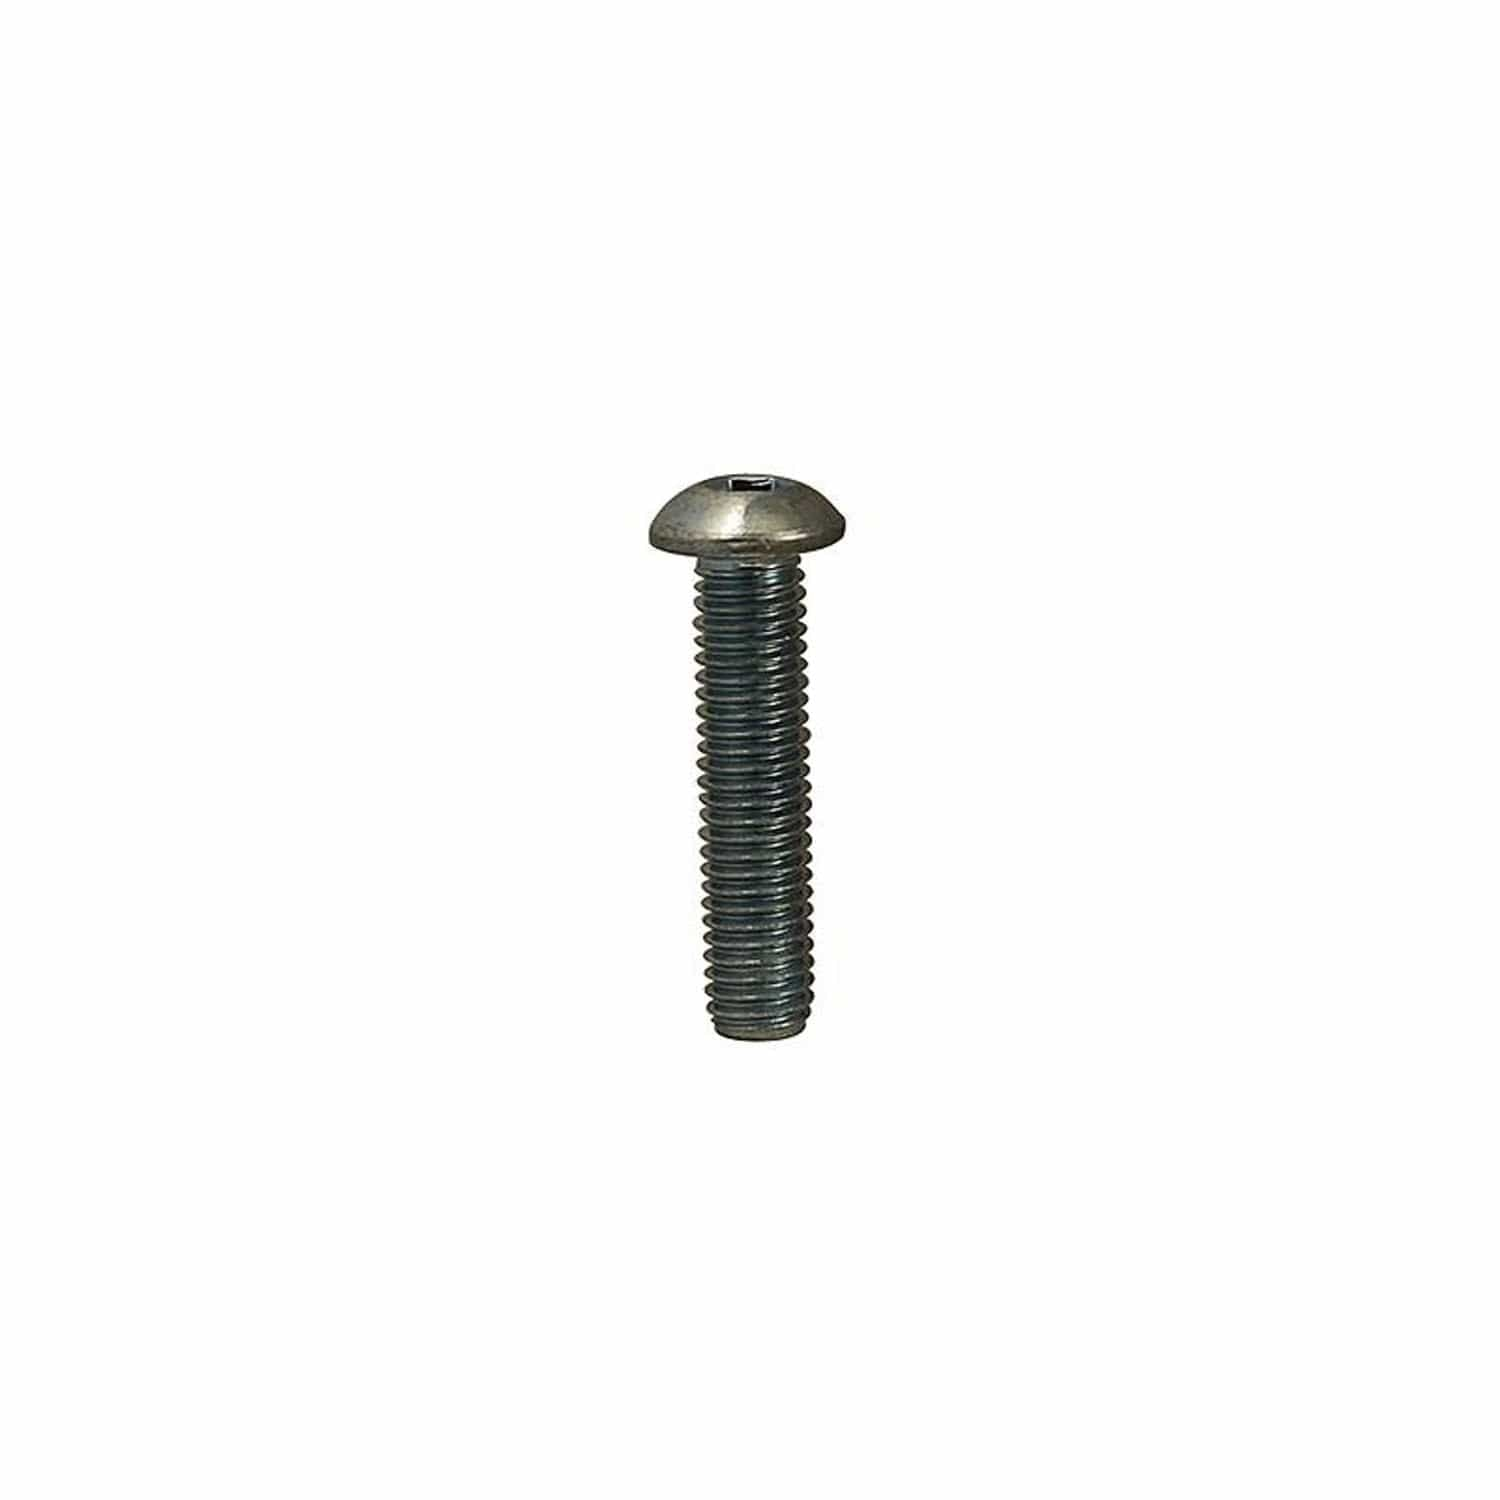 Button Head Socket Cap  M6-1.0 X 30 S/S (shift pedals) - Woodcraft Technologies - Motorcycle Parts